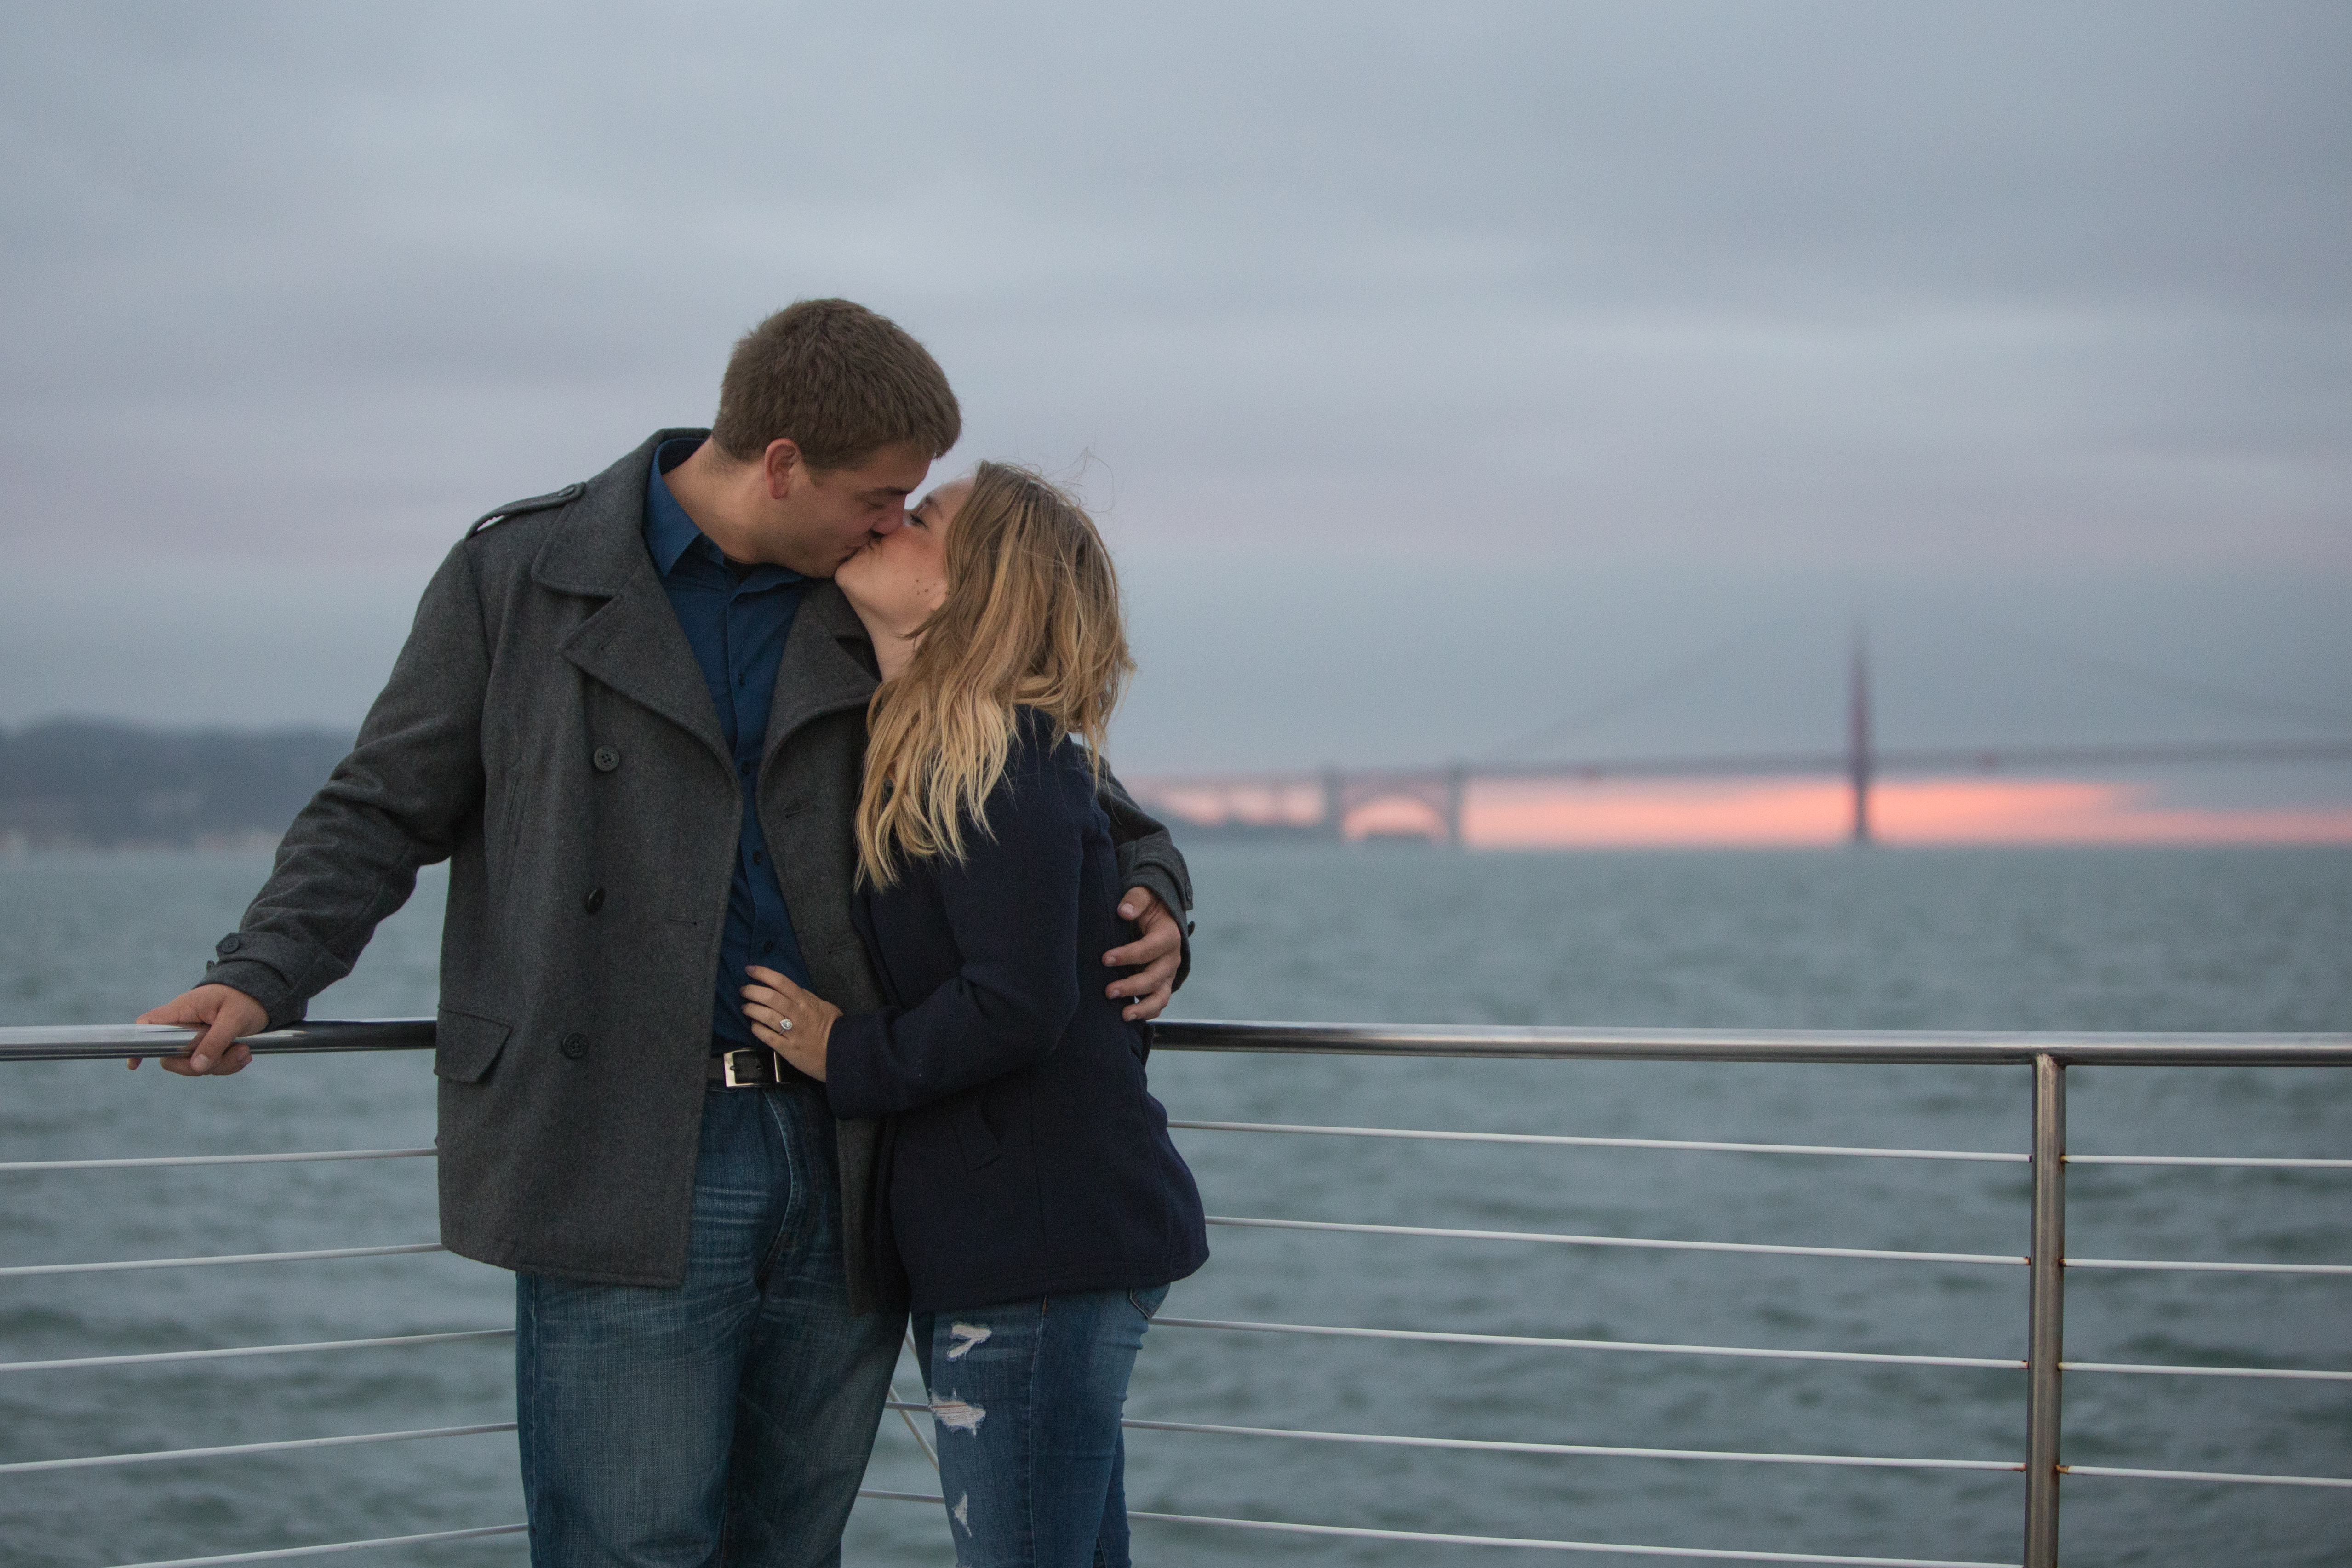 Image 6 of Tatyana and Steven | San Francisco Marrige Proposal